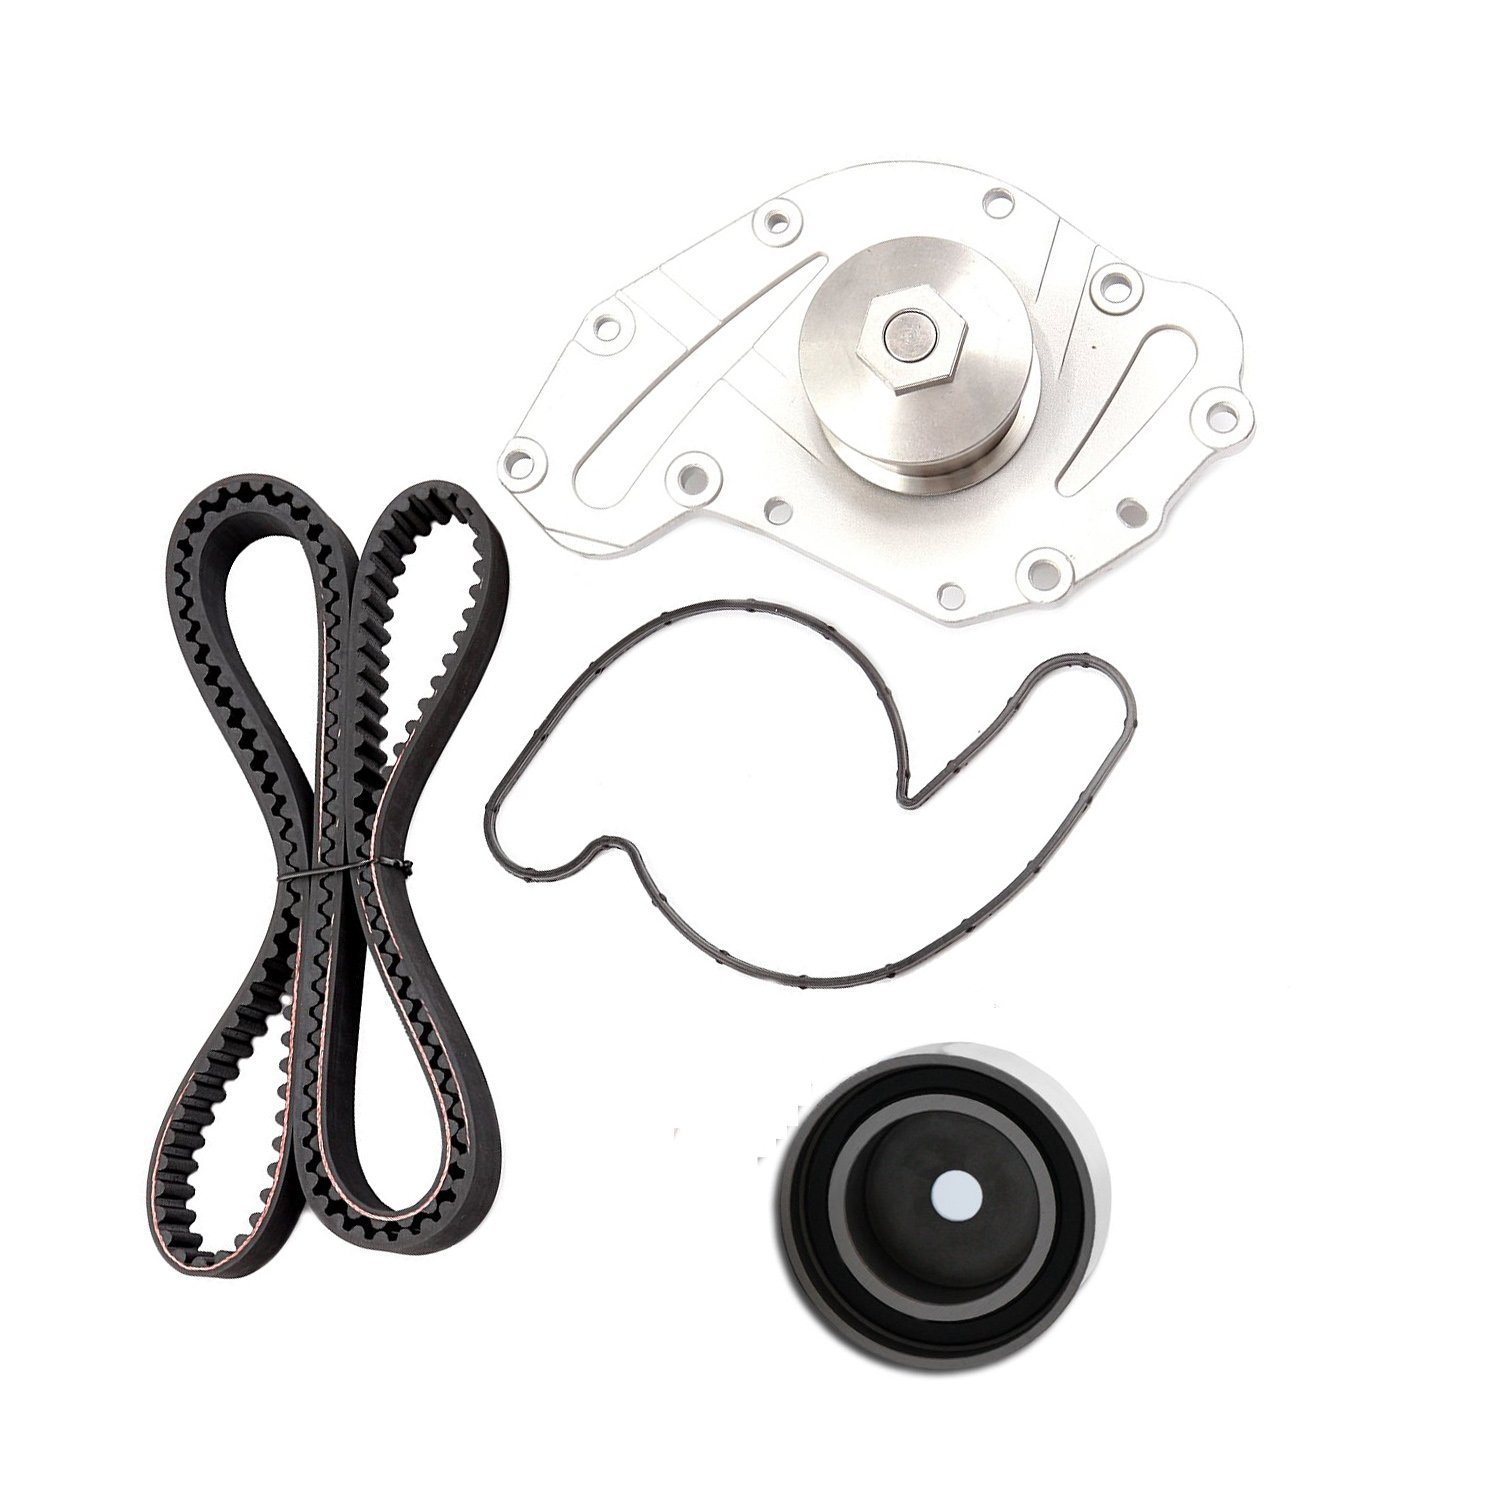 Timing Belt 2007 Chrysler 300 Touring Water Pump Kit Fit 2005 2010 Dodge Volkswagen 35l 40l V6 Sohc Automotive